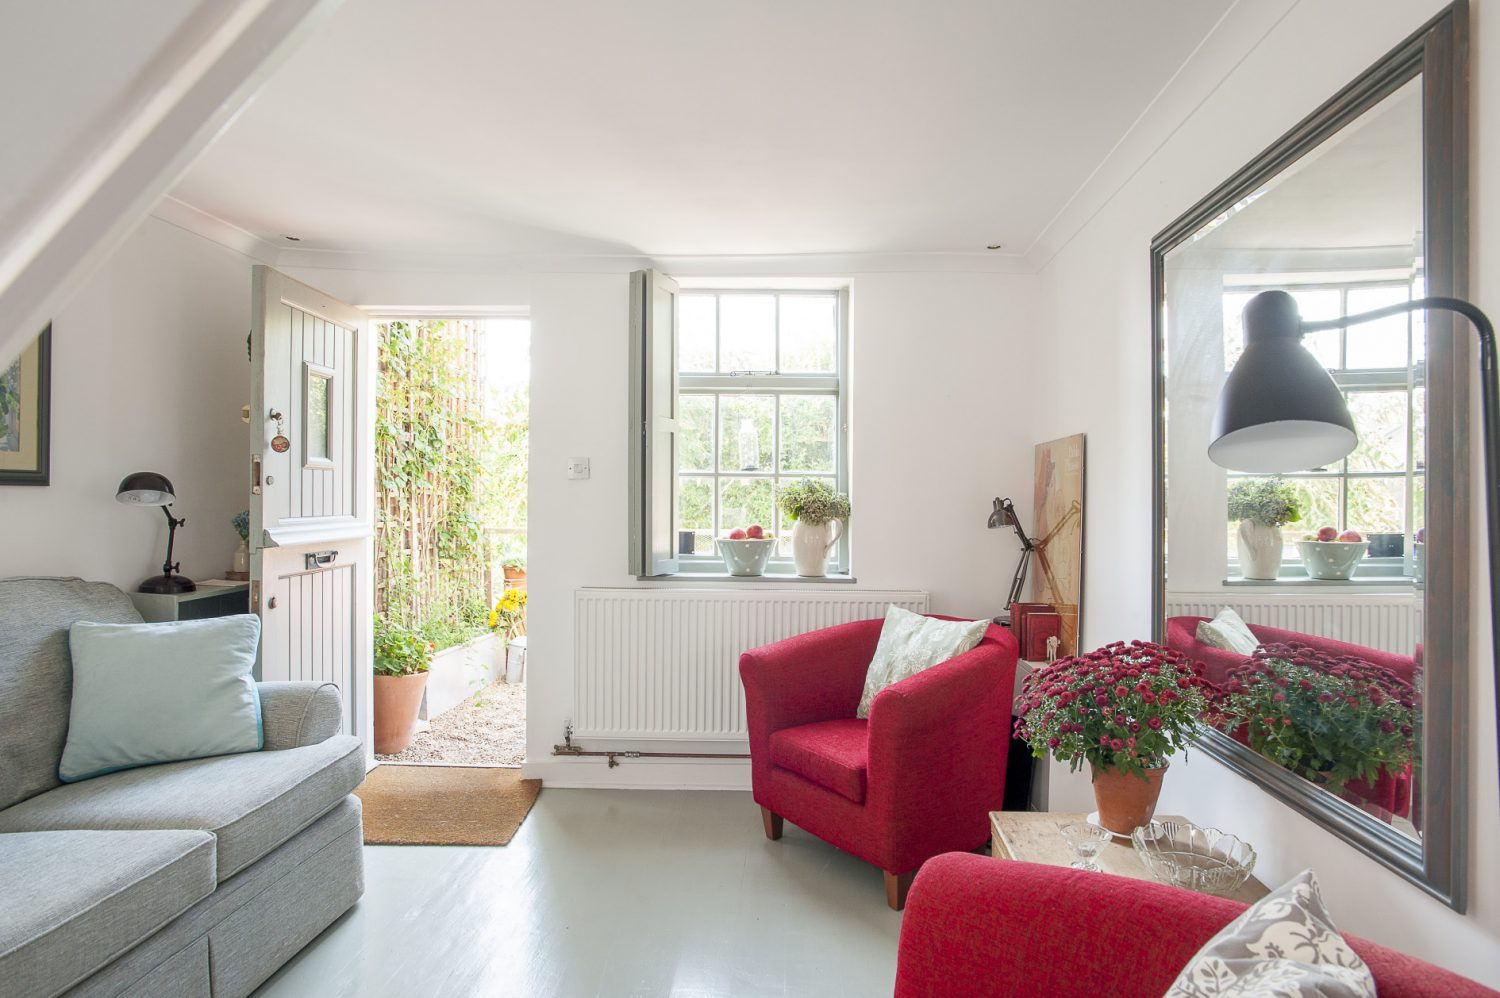 The living room is clean, crisp, comfortable and welcoming, the white walls set off with a grey sofa and red armchairs. There is no fireplace and so Linda has given the room a focal point with a large and elegant mirror